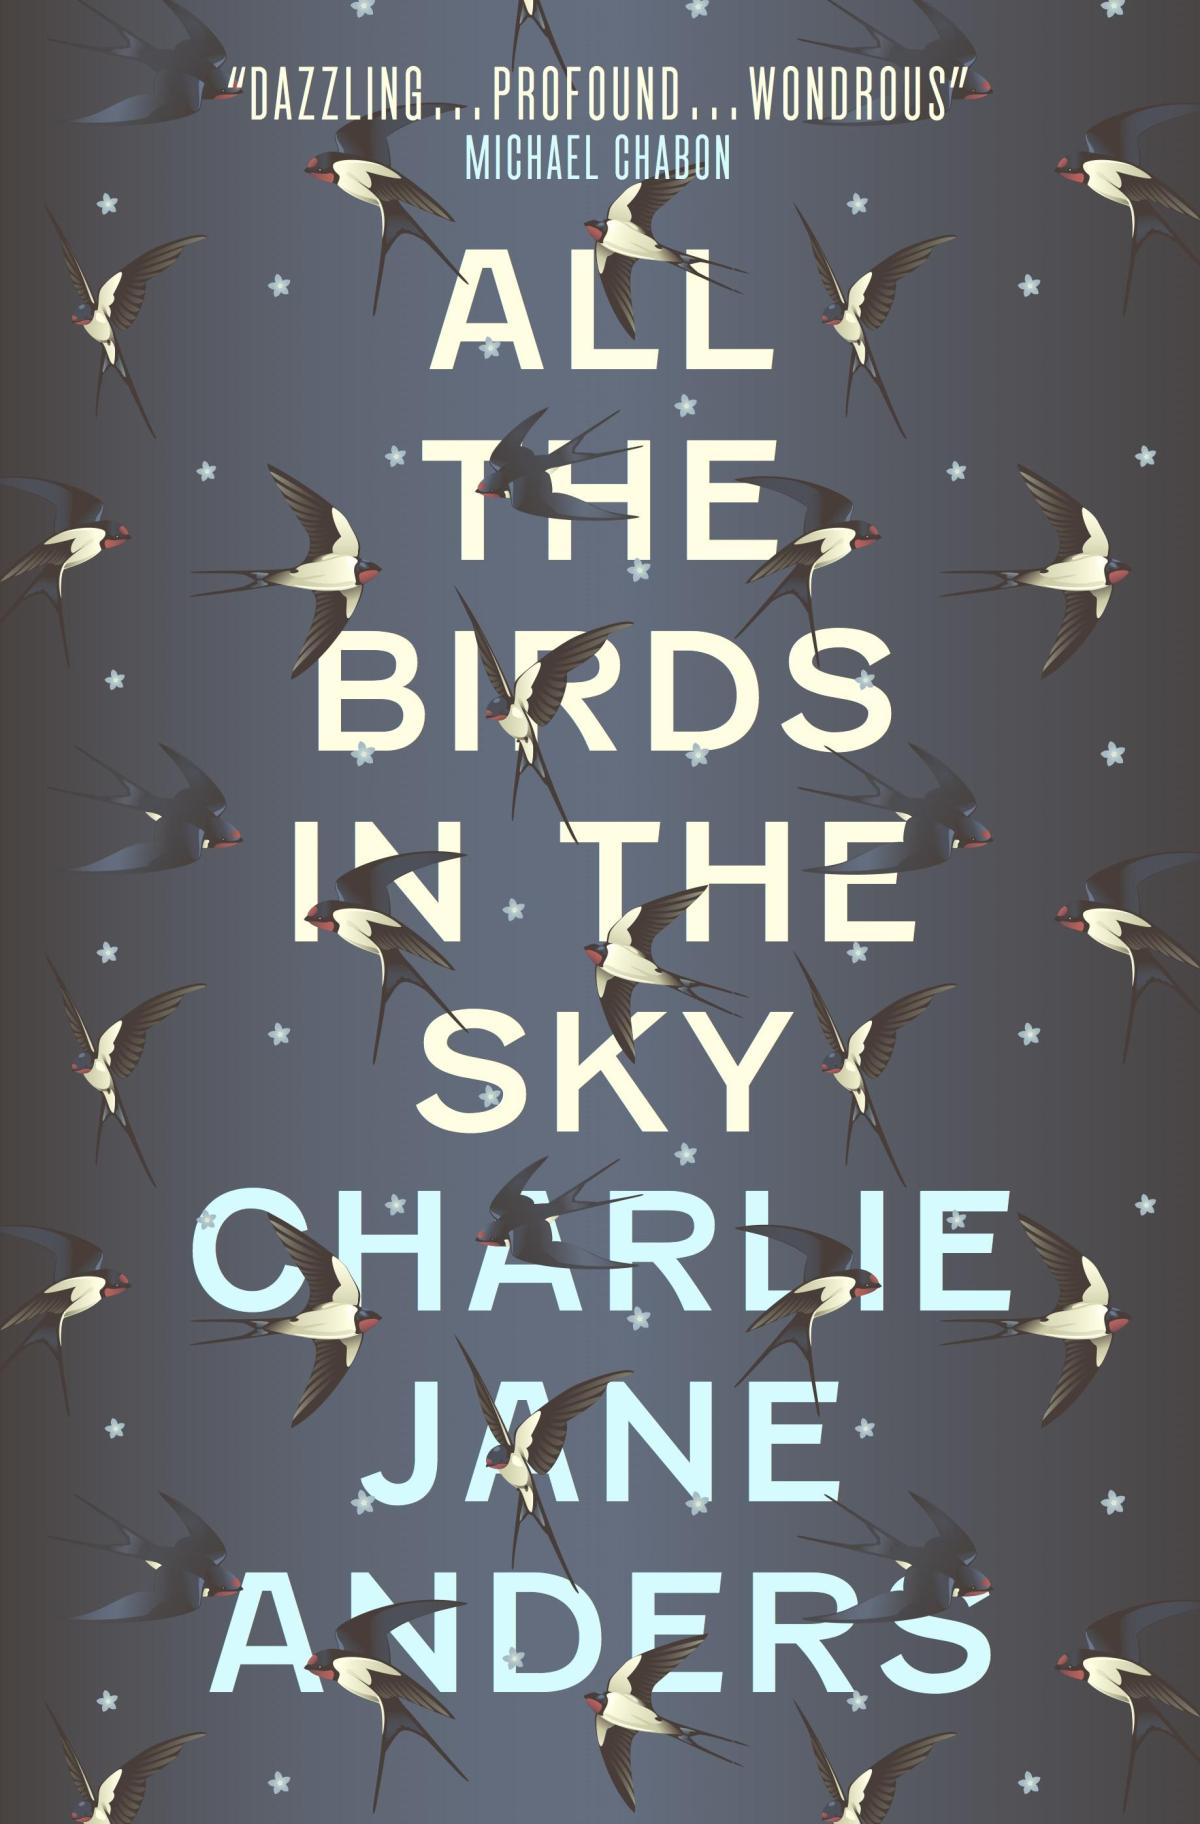 All the Birds in the Sky – Charlie Jane Anders